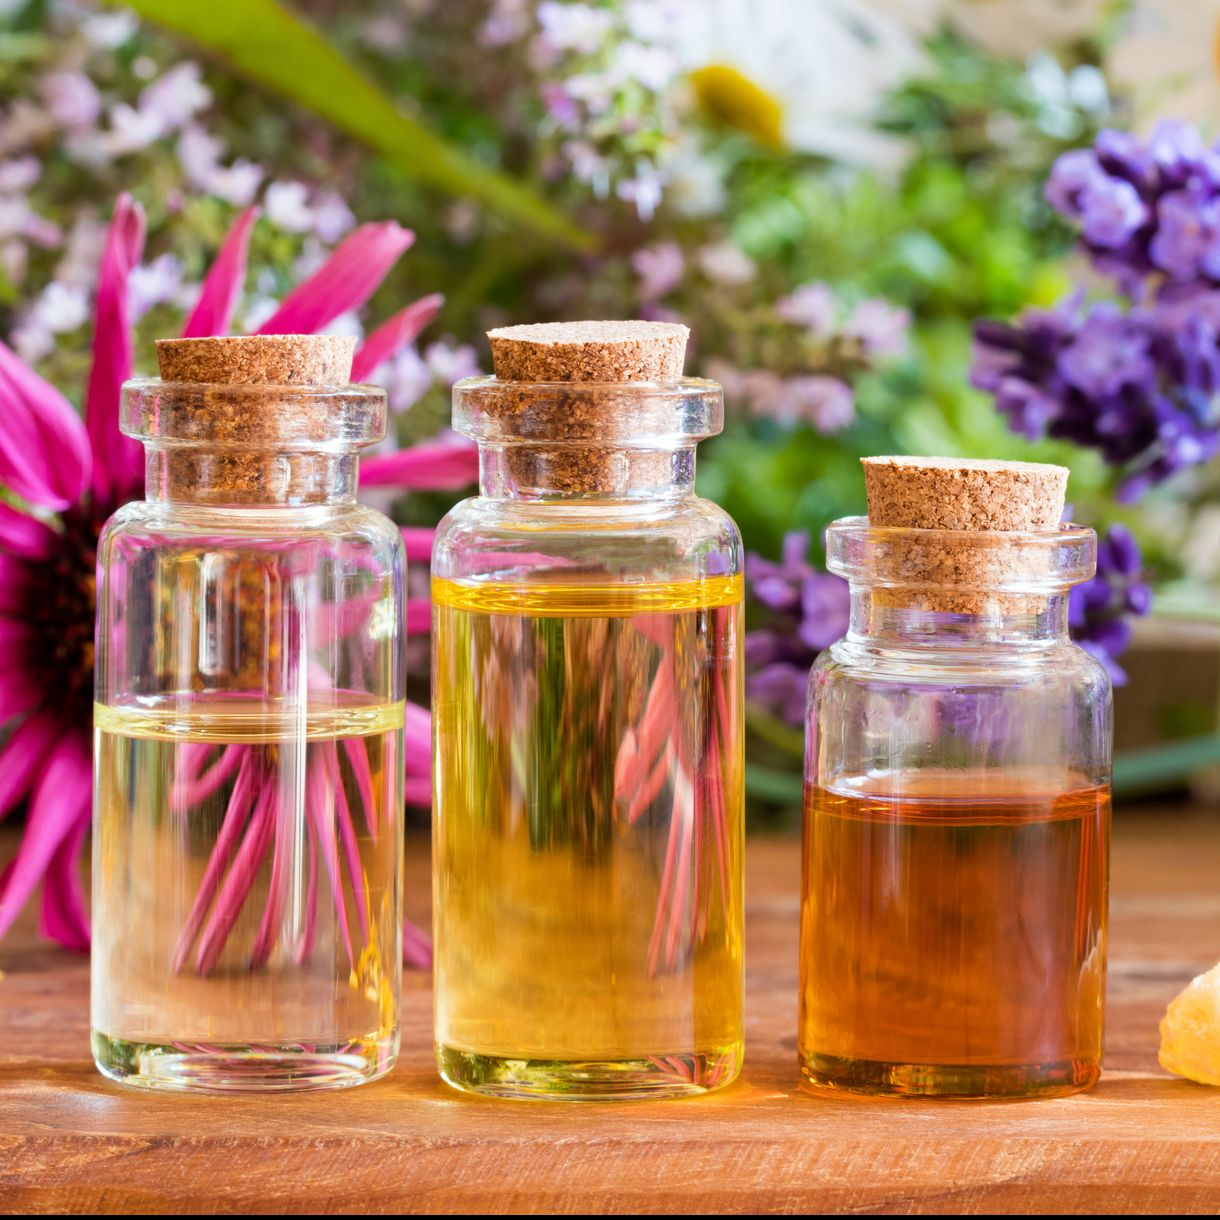 8 Best Essential Oils for Headaches and How to Use Them